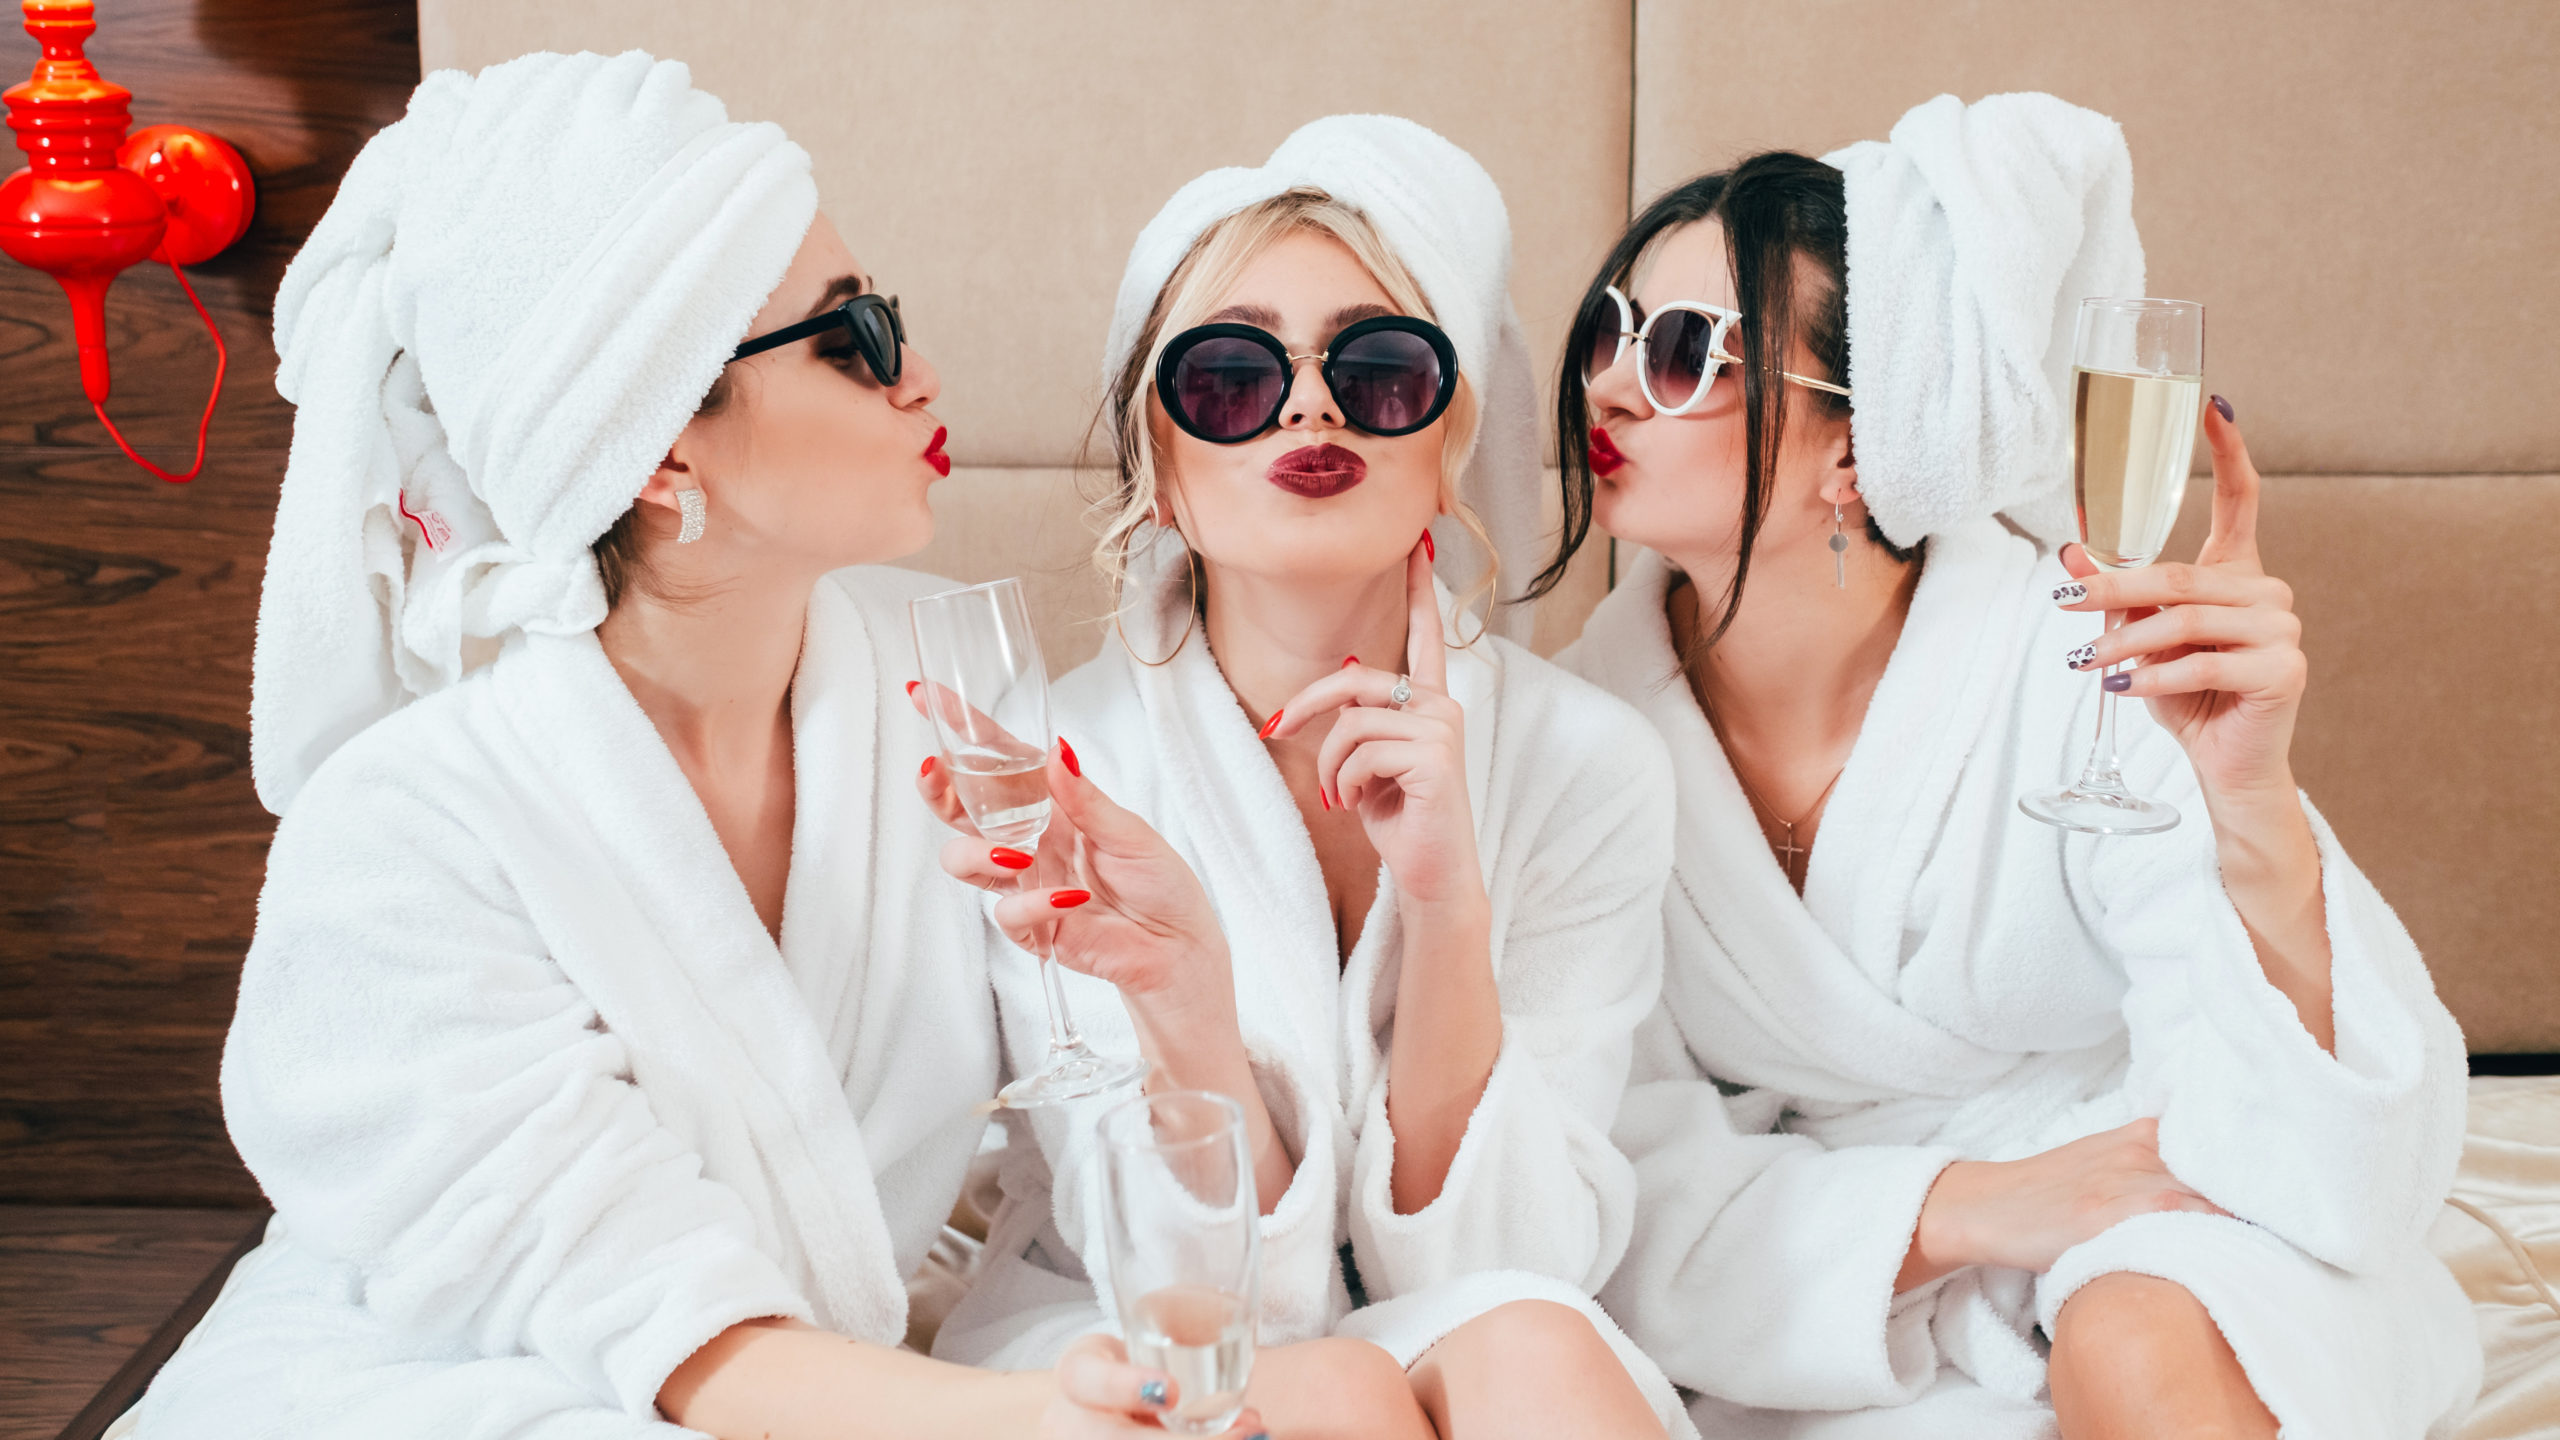 Indulge In Your Go-To Beauty Services Post-Quarantine!